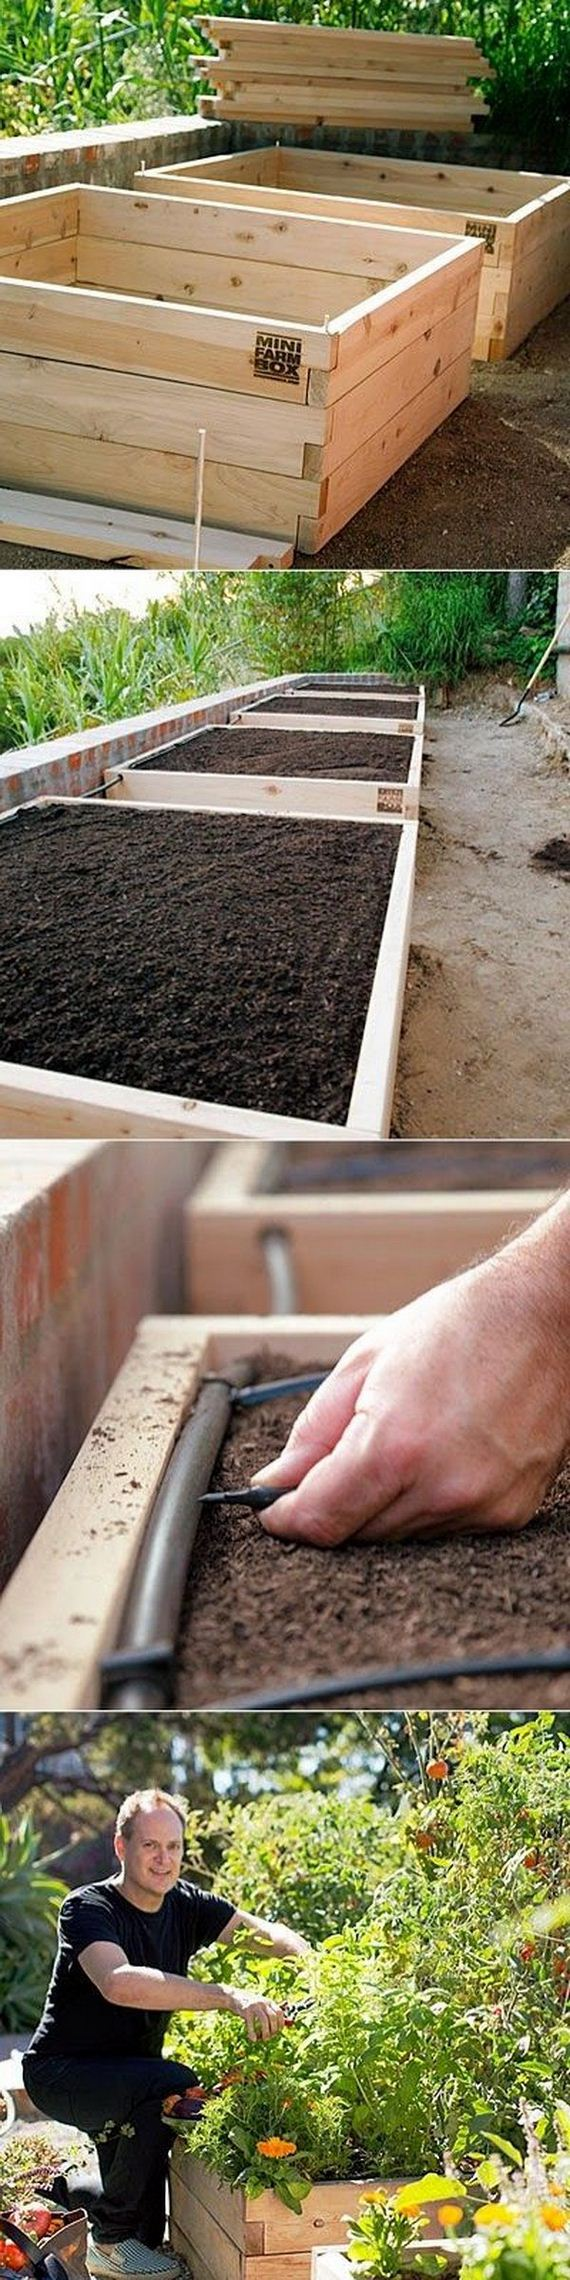 30-raised-garden-beds